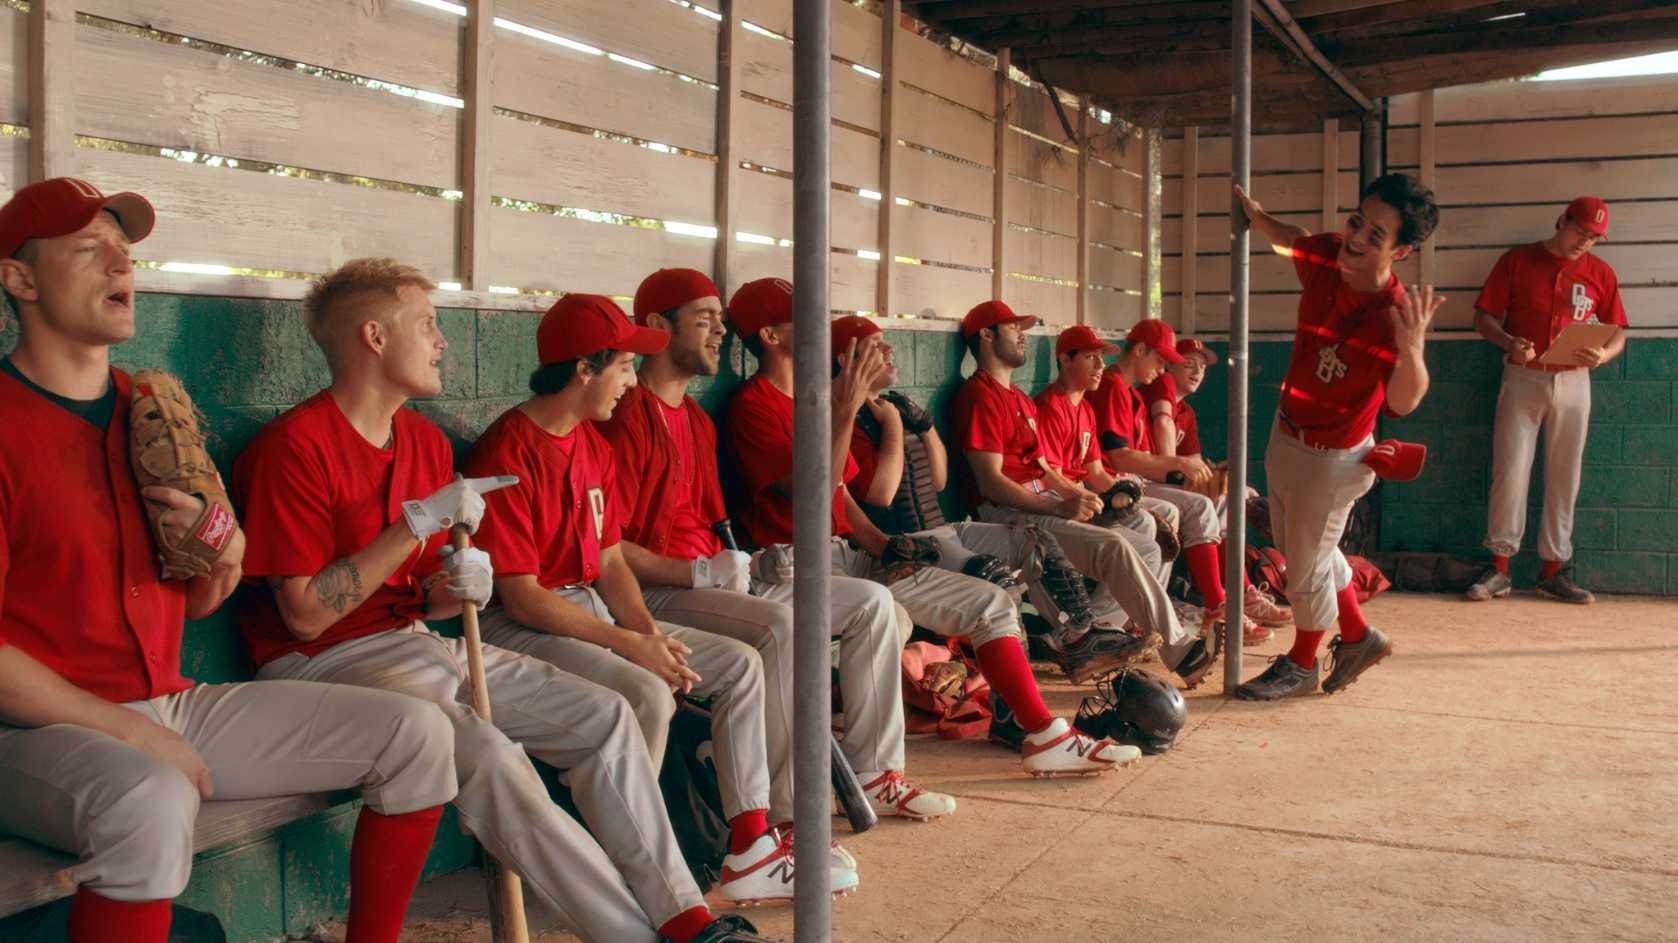 Exclusive: Joe Mazzello On Why 'Undrafted' Is Not Your Typical Baseball Movie | Joe Mazzello